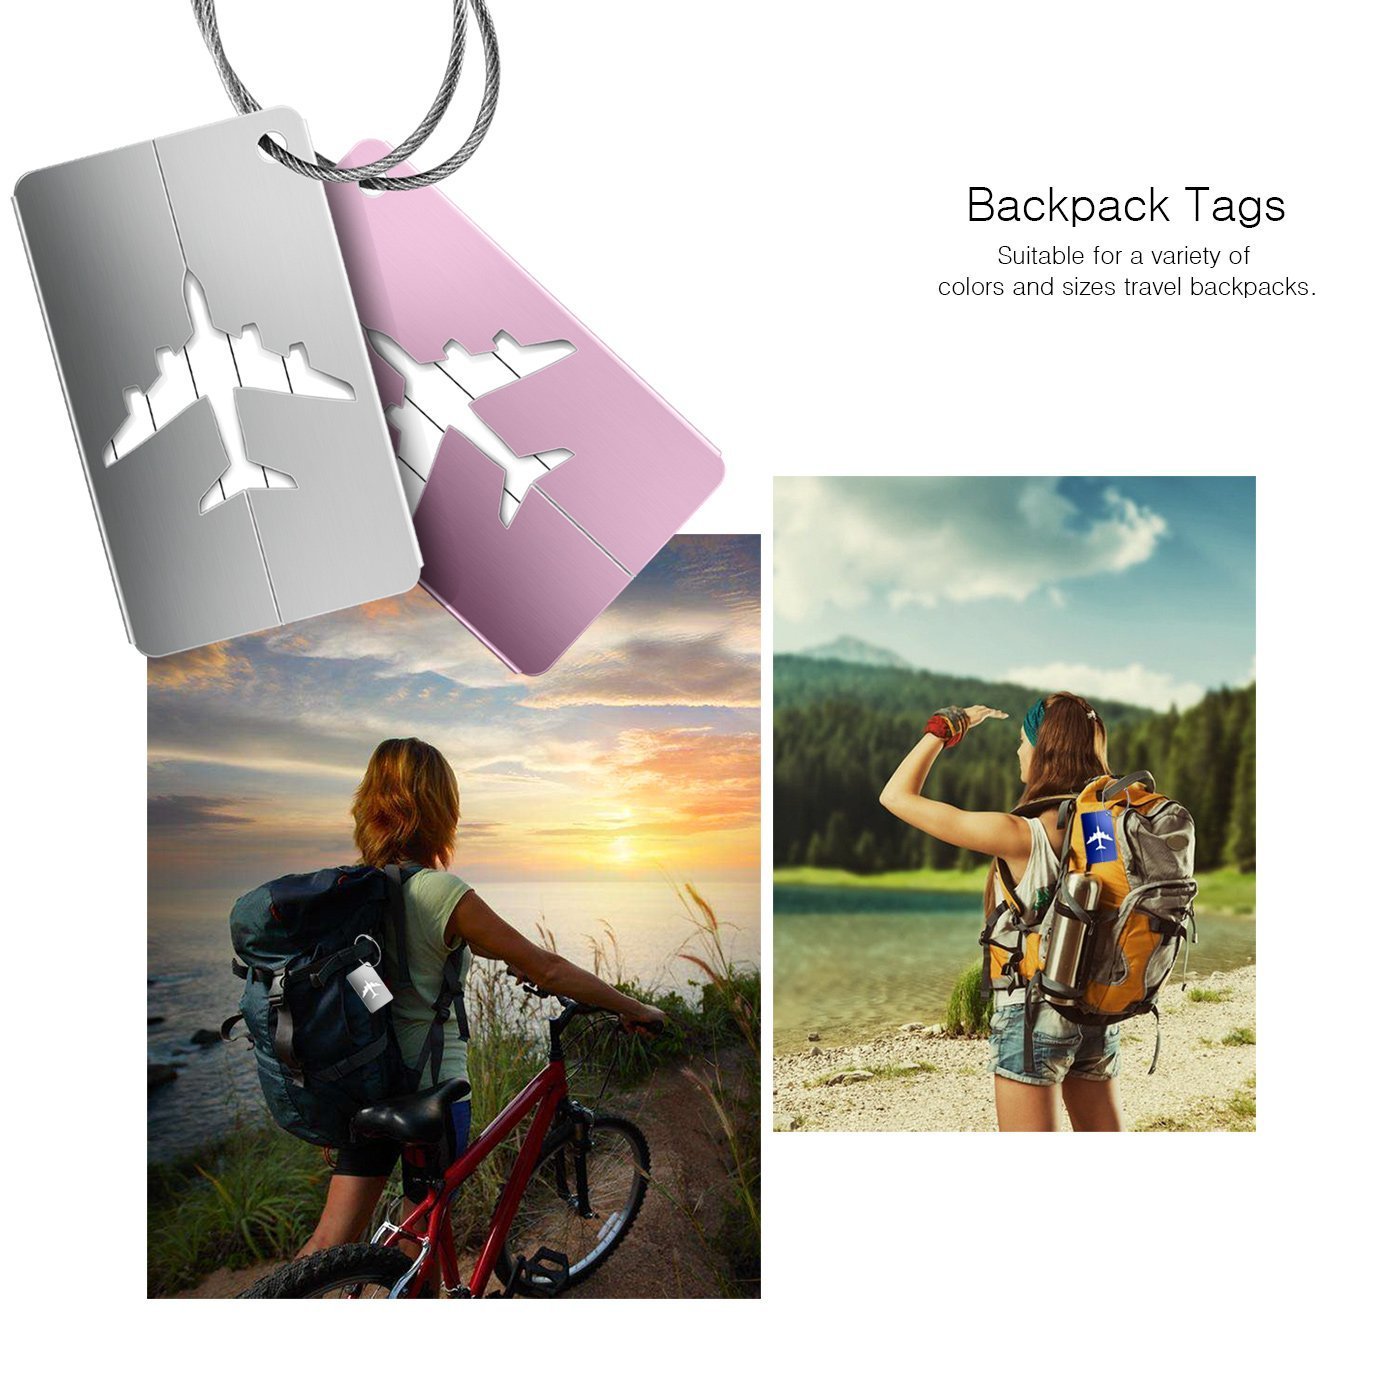 Luggage Tags 10pcs,Baggage Tags Tag Labels with Business Card Holder(10 colors) by Yosemy (Image #4)